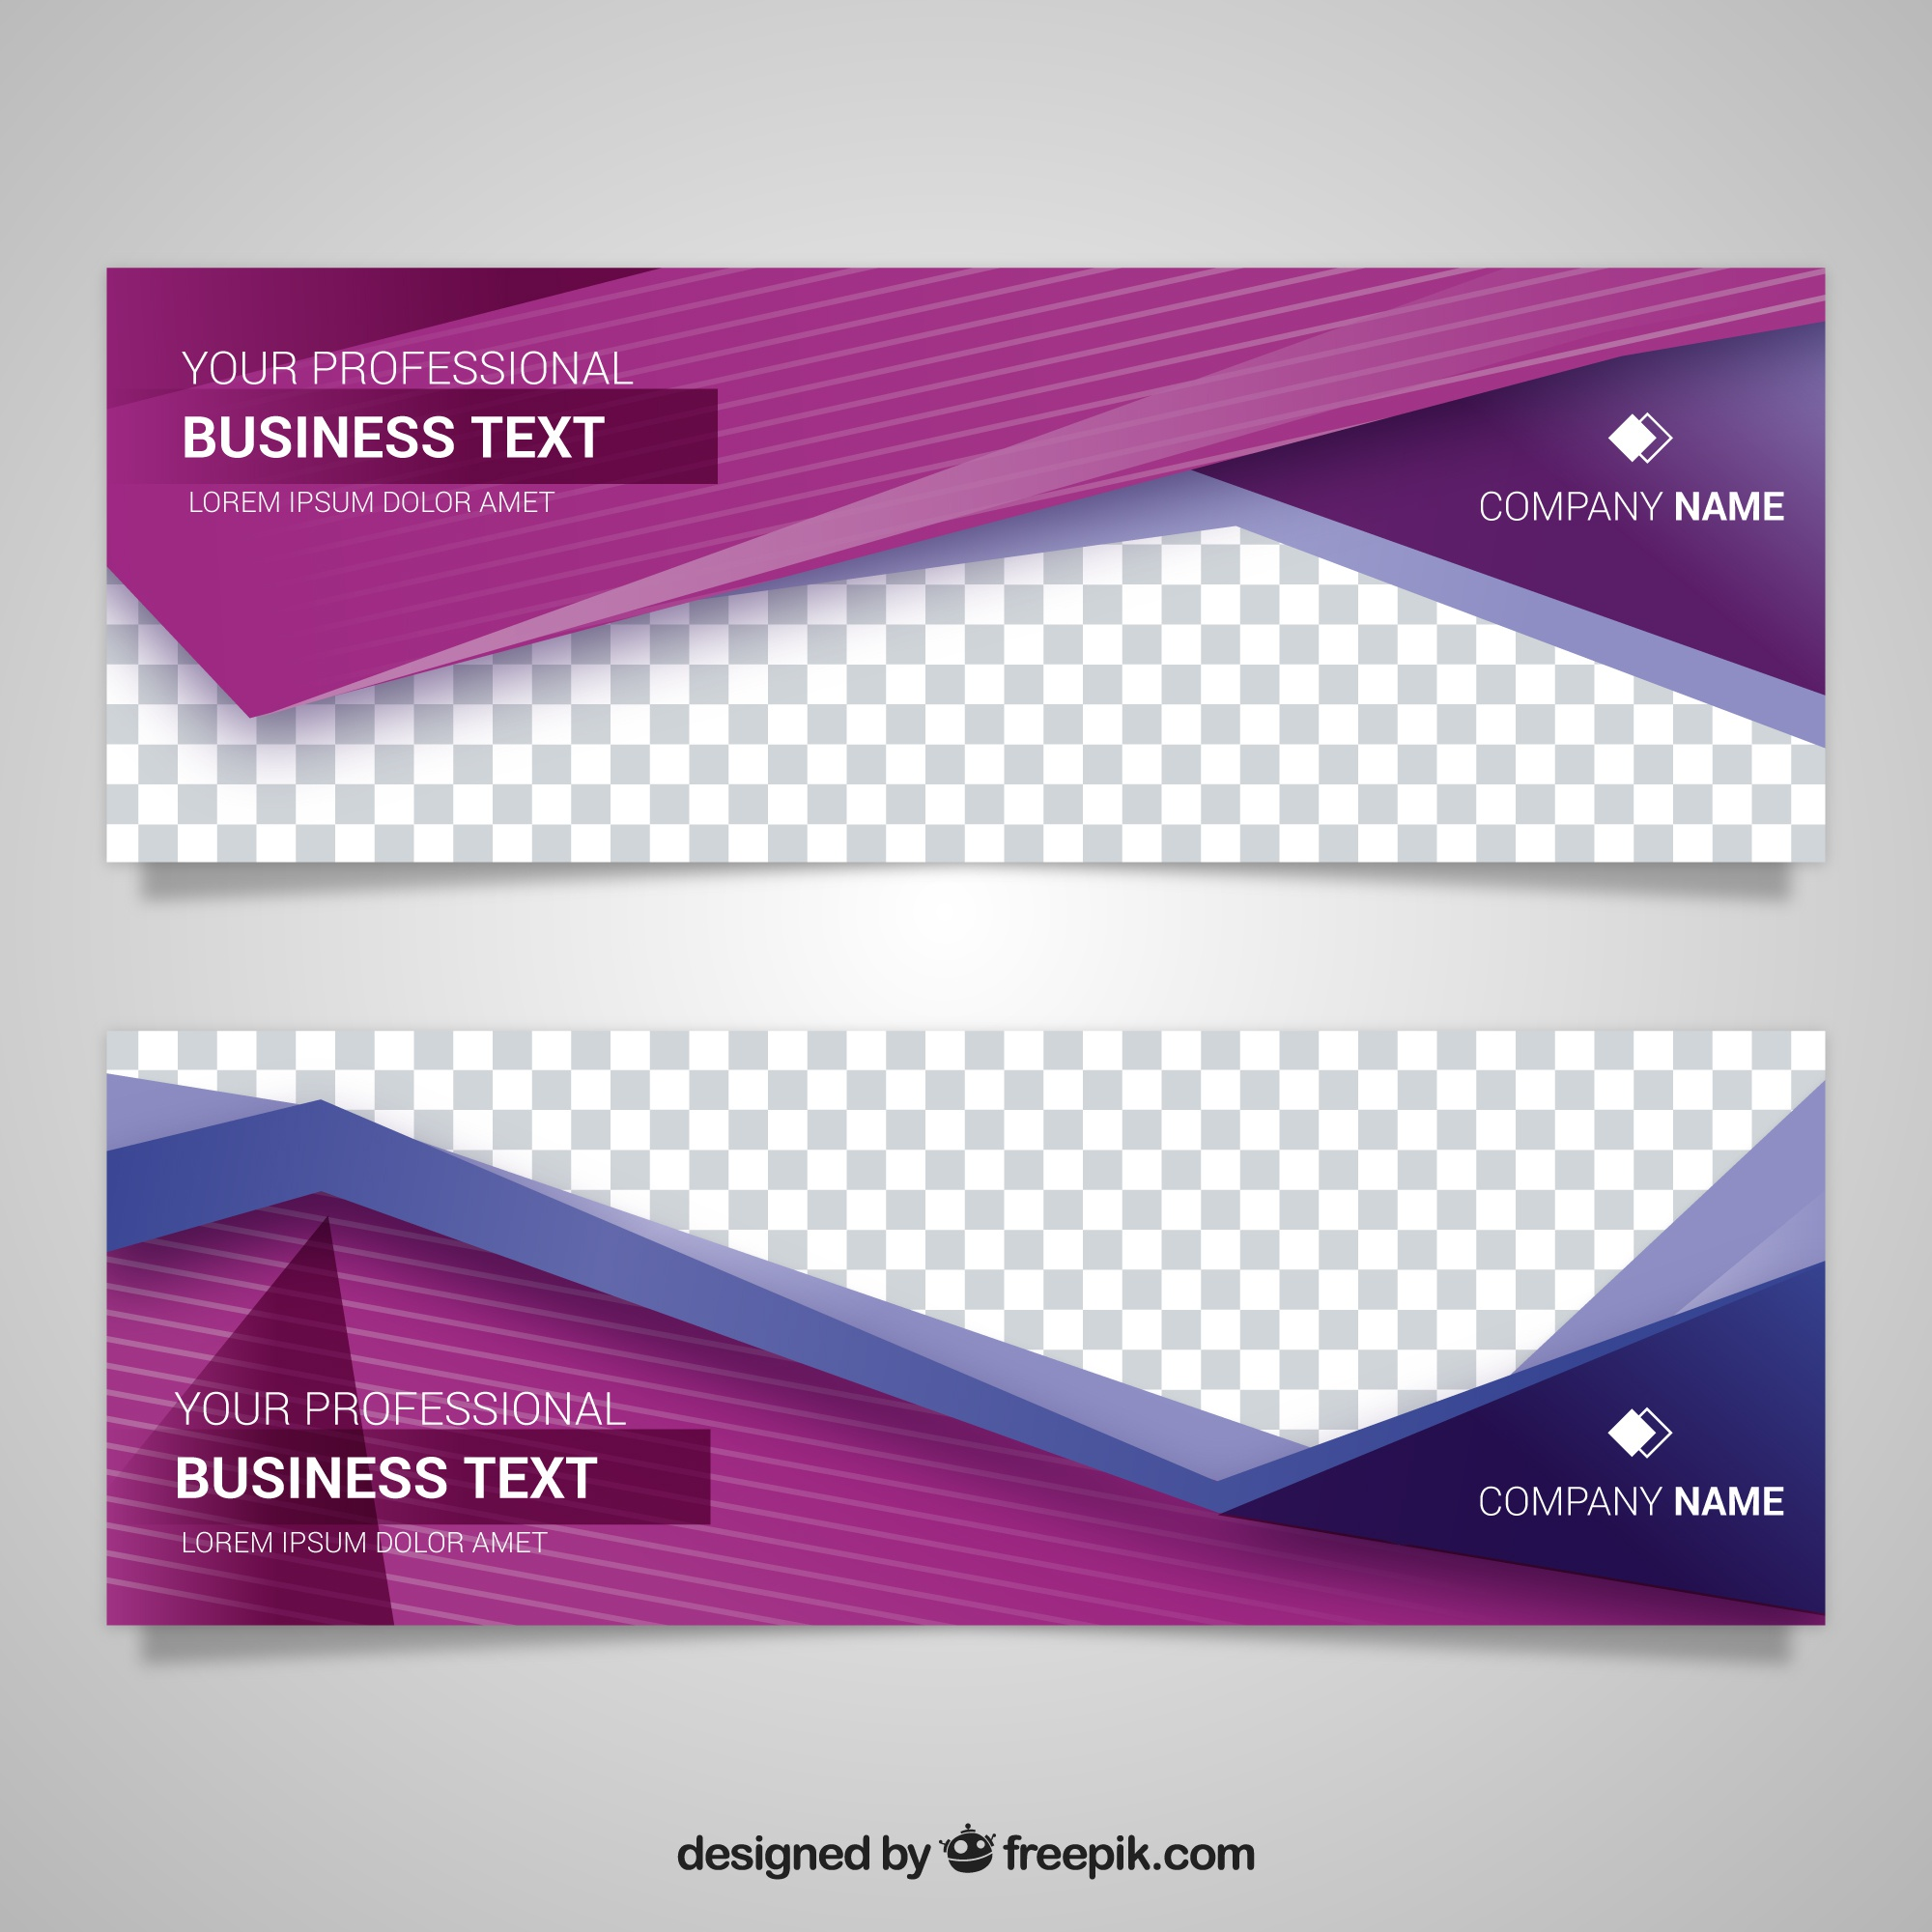 Modern banner with beautiful geometric shapes